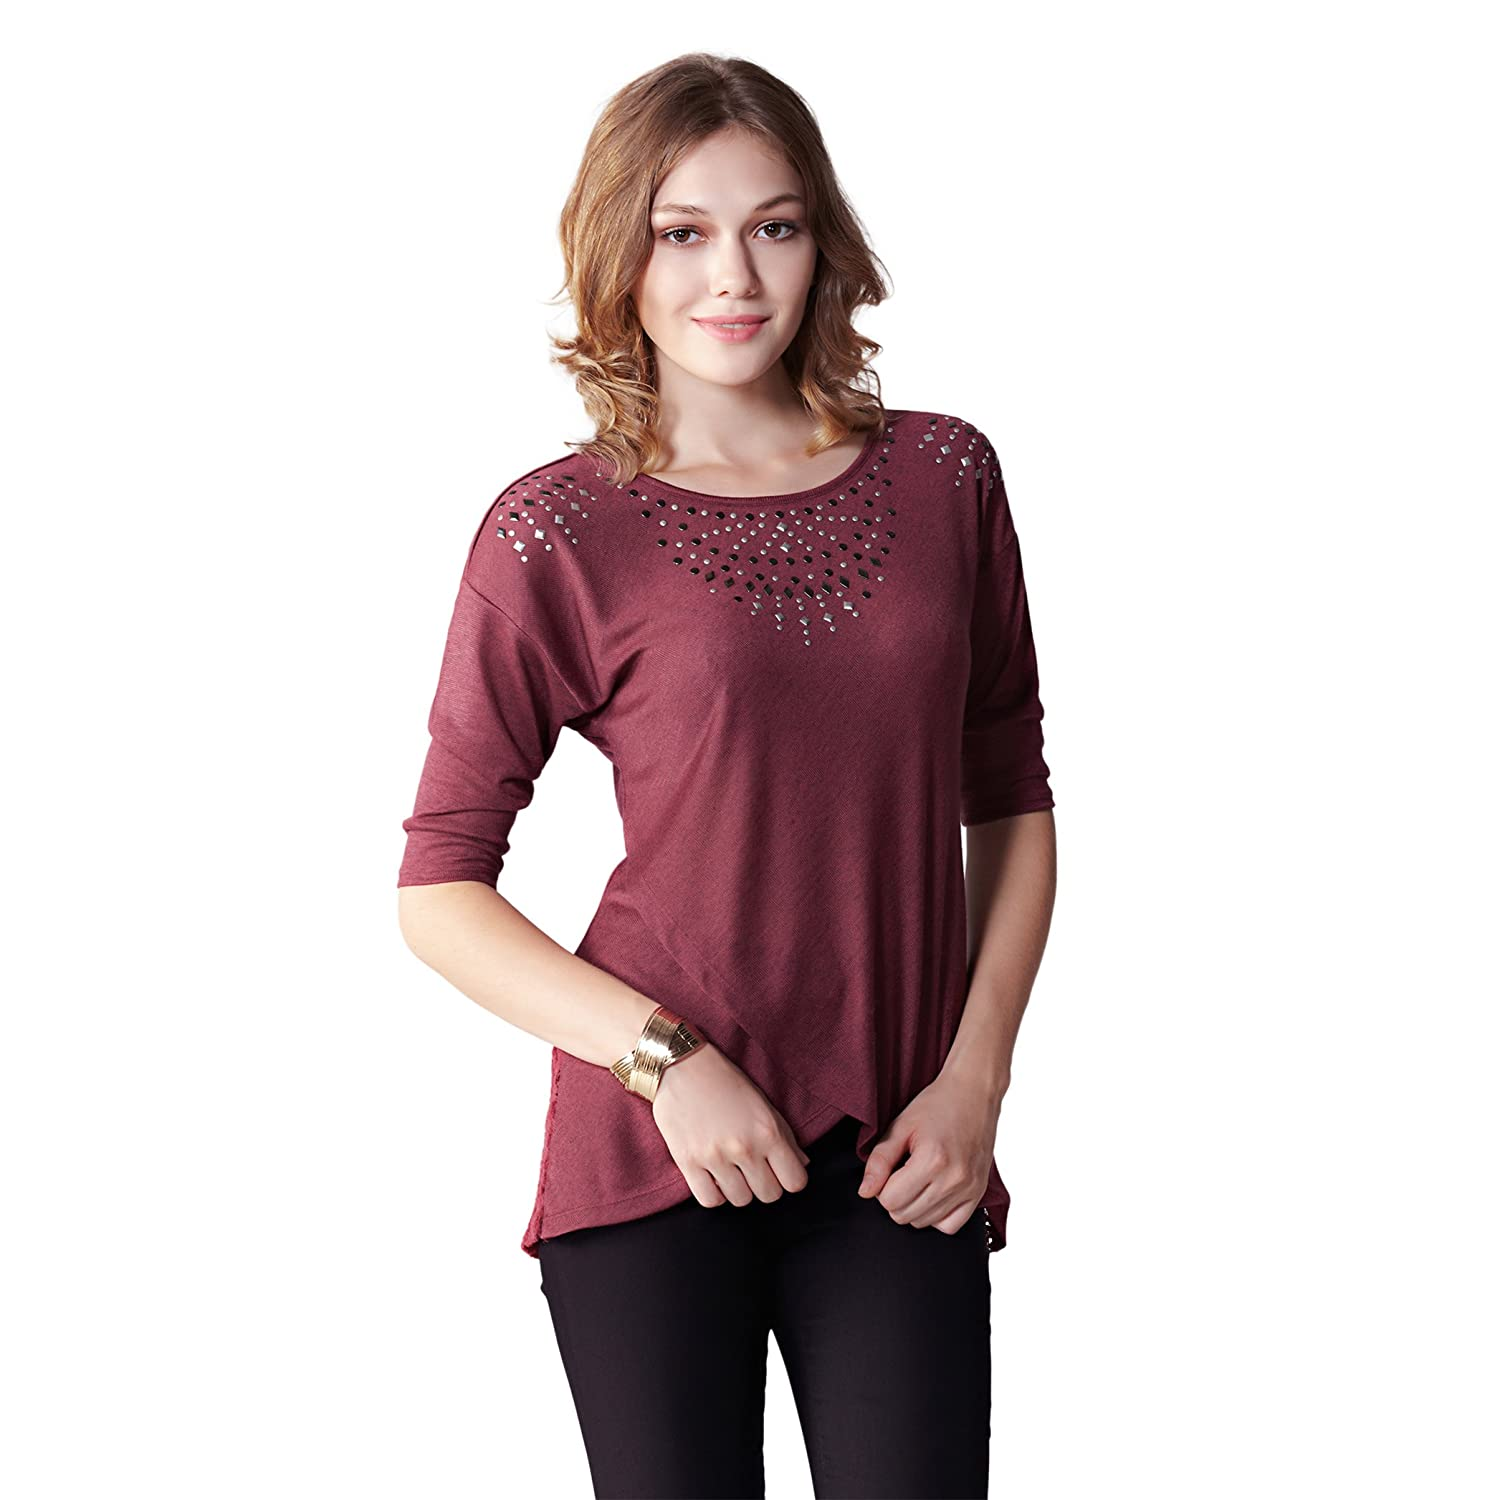 f81240e1003ae3 OneWorld Half Sleeve Round Neck Asymmetric Wrap Hem Casual Tee Shirt Top  with Sequins for Ladies and Women at Amazon Women s Clothing store